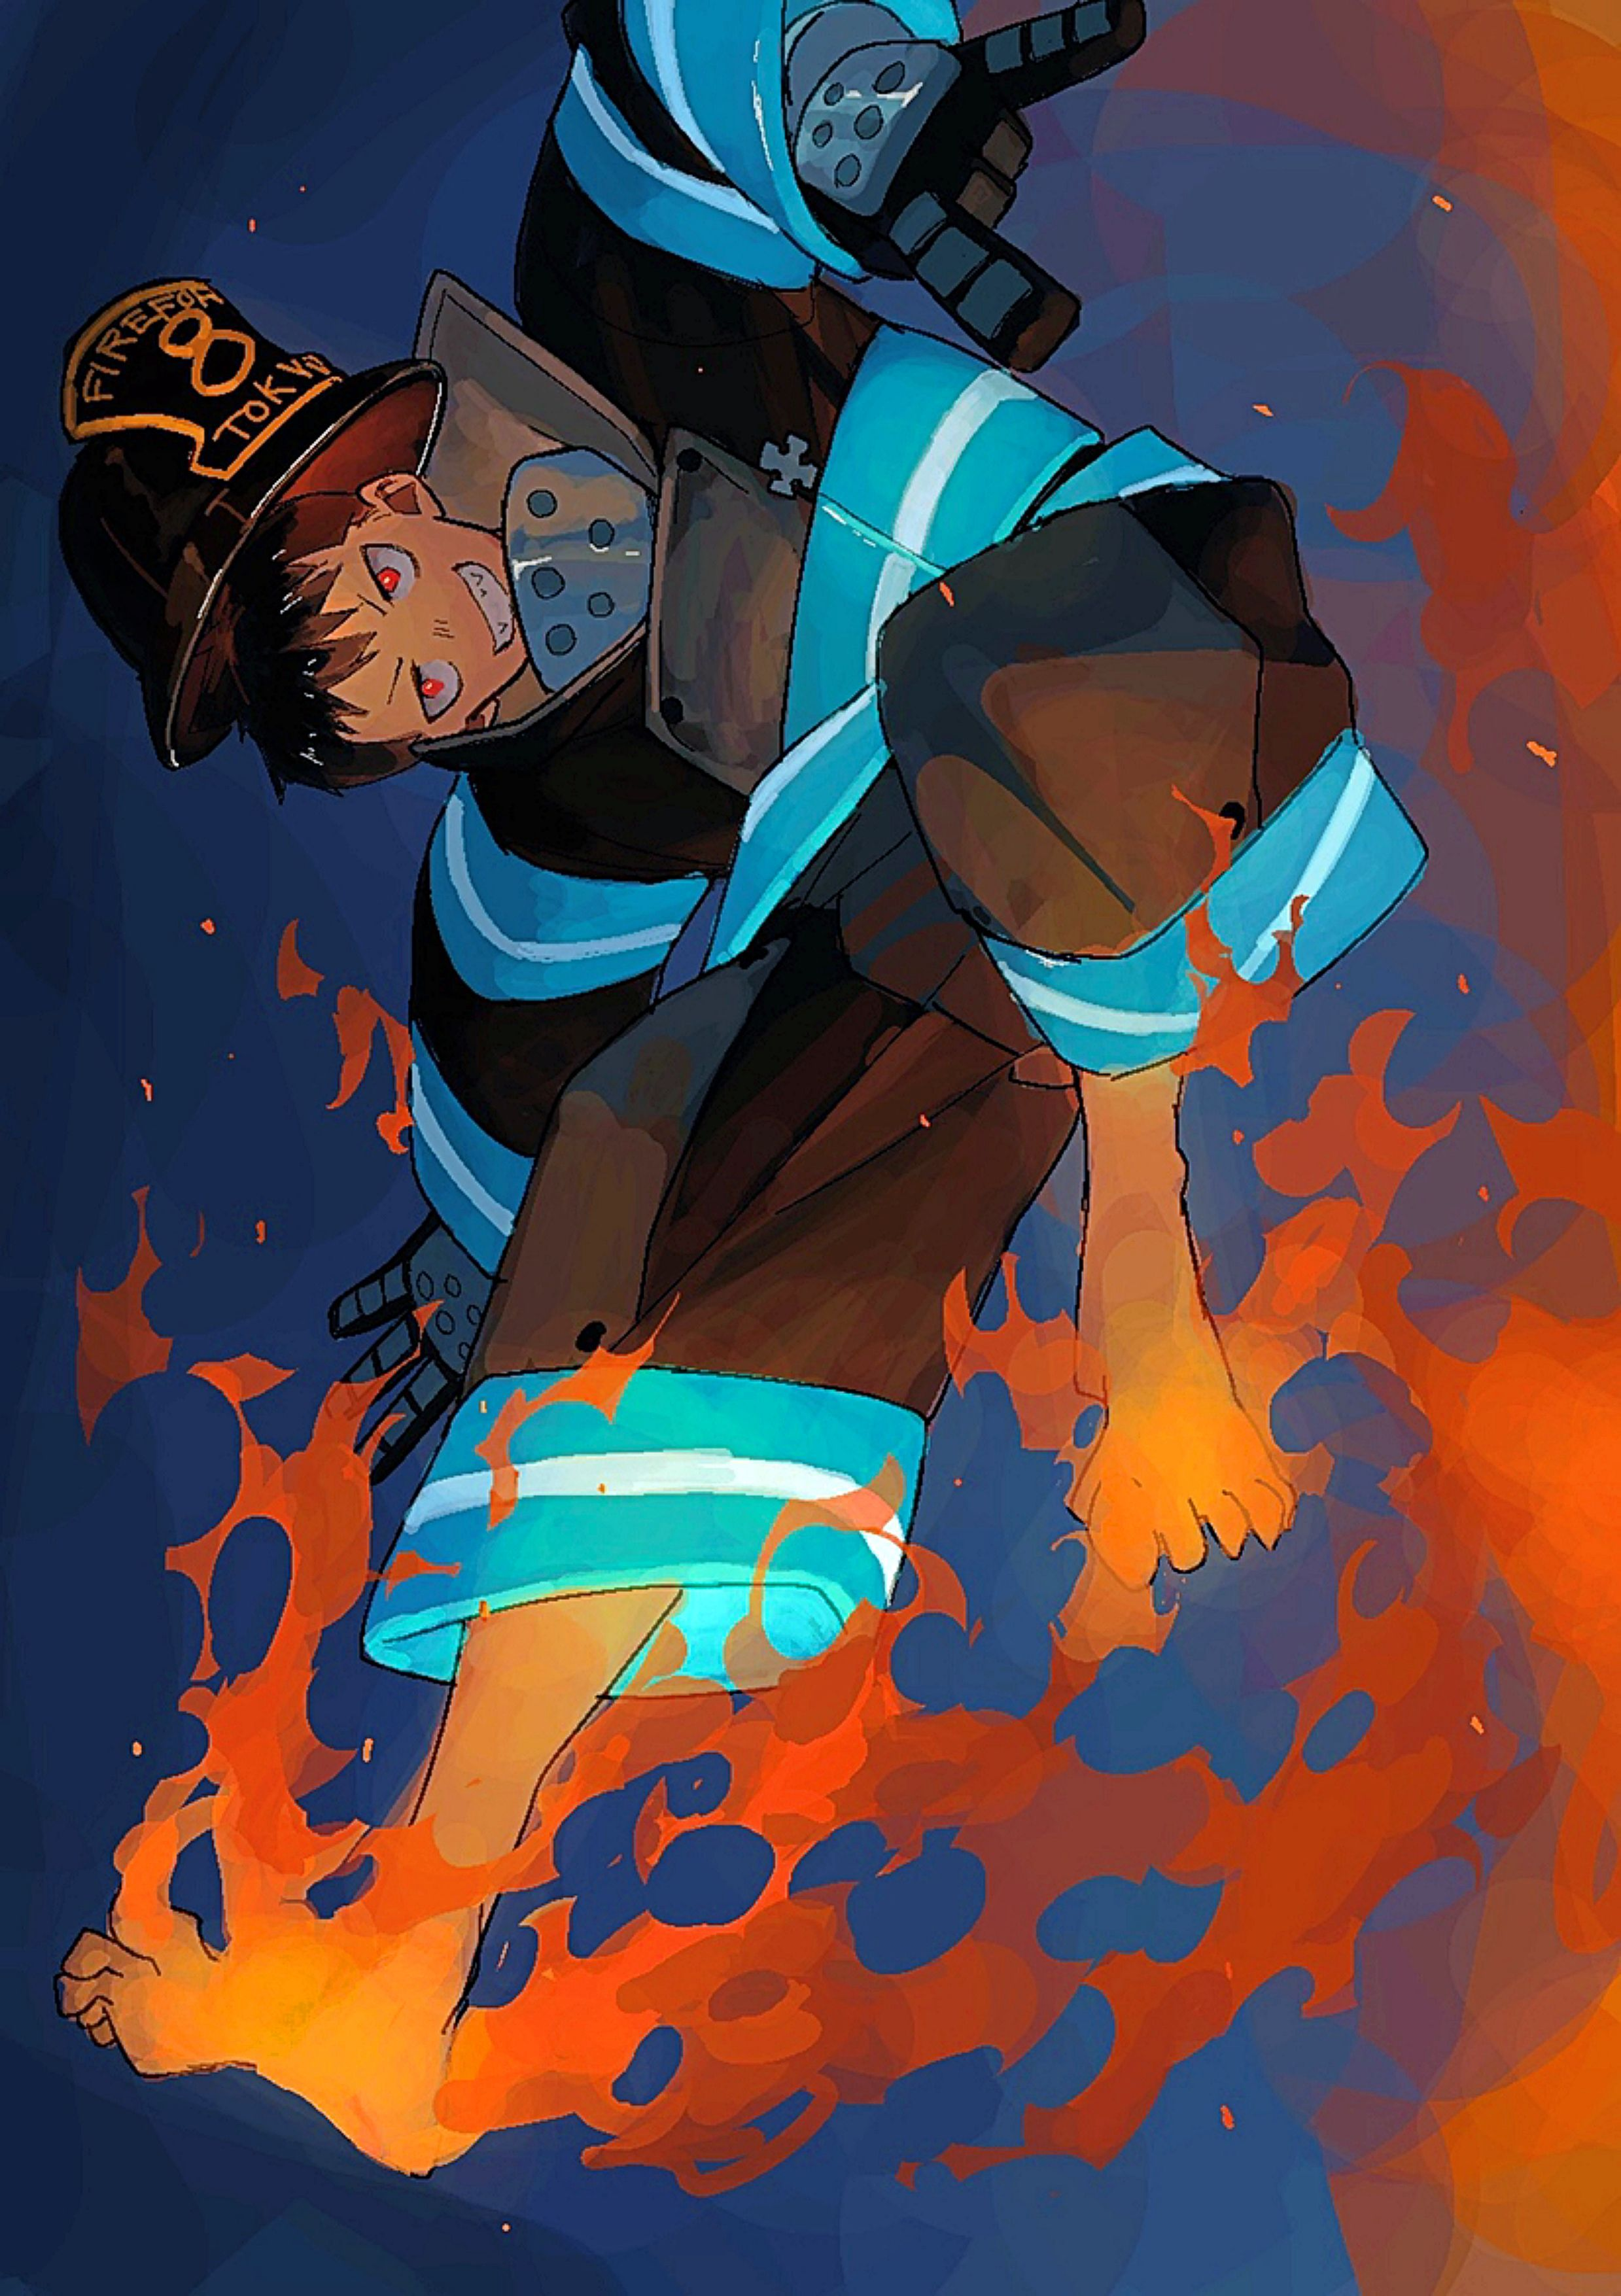 Shinra Kusakabe Wallpapers Top Free Shinra Kusakabe Backgrounds Wallpaperaccess Check out this fantastic collection of fire force wallpapers, with 38 fire force background images for your desktop, phone or tablet. shinra kusakabe wallpapers top free